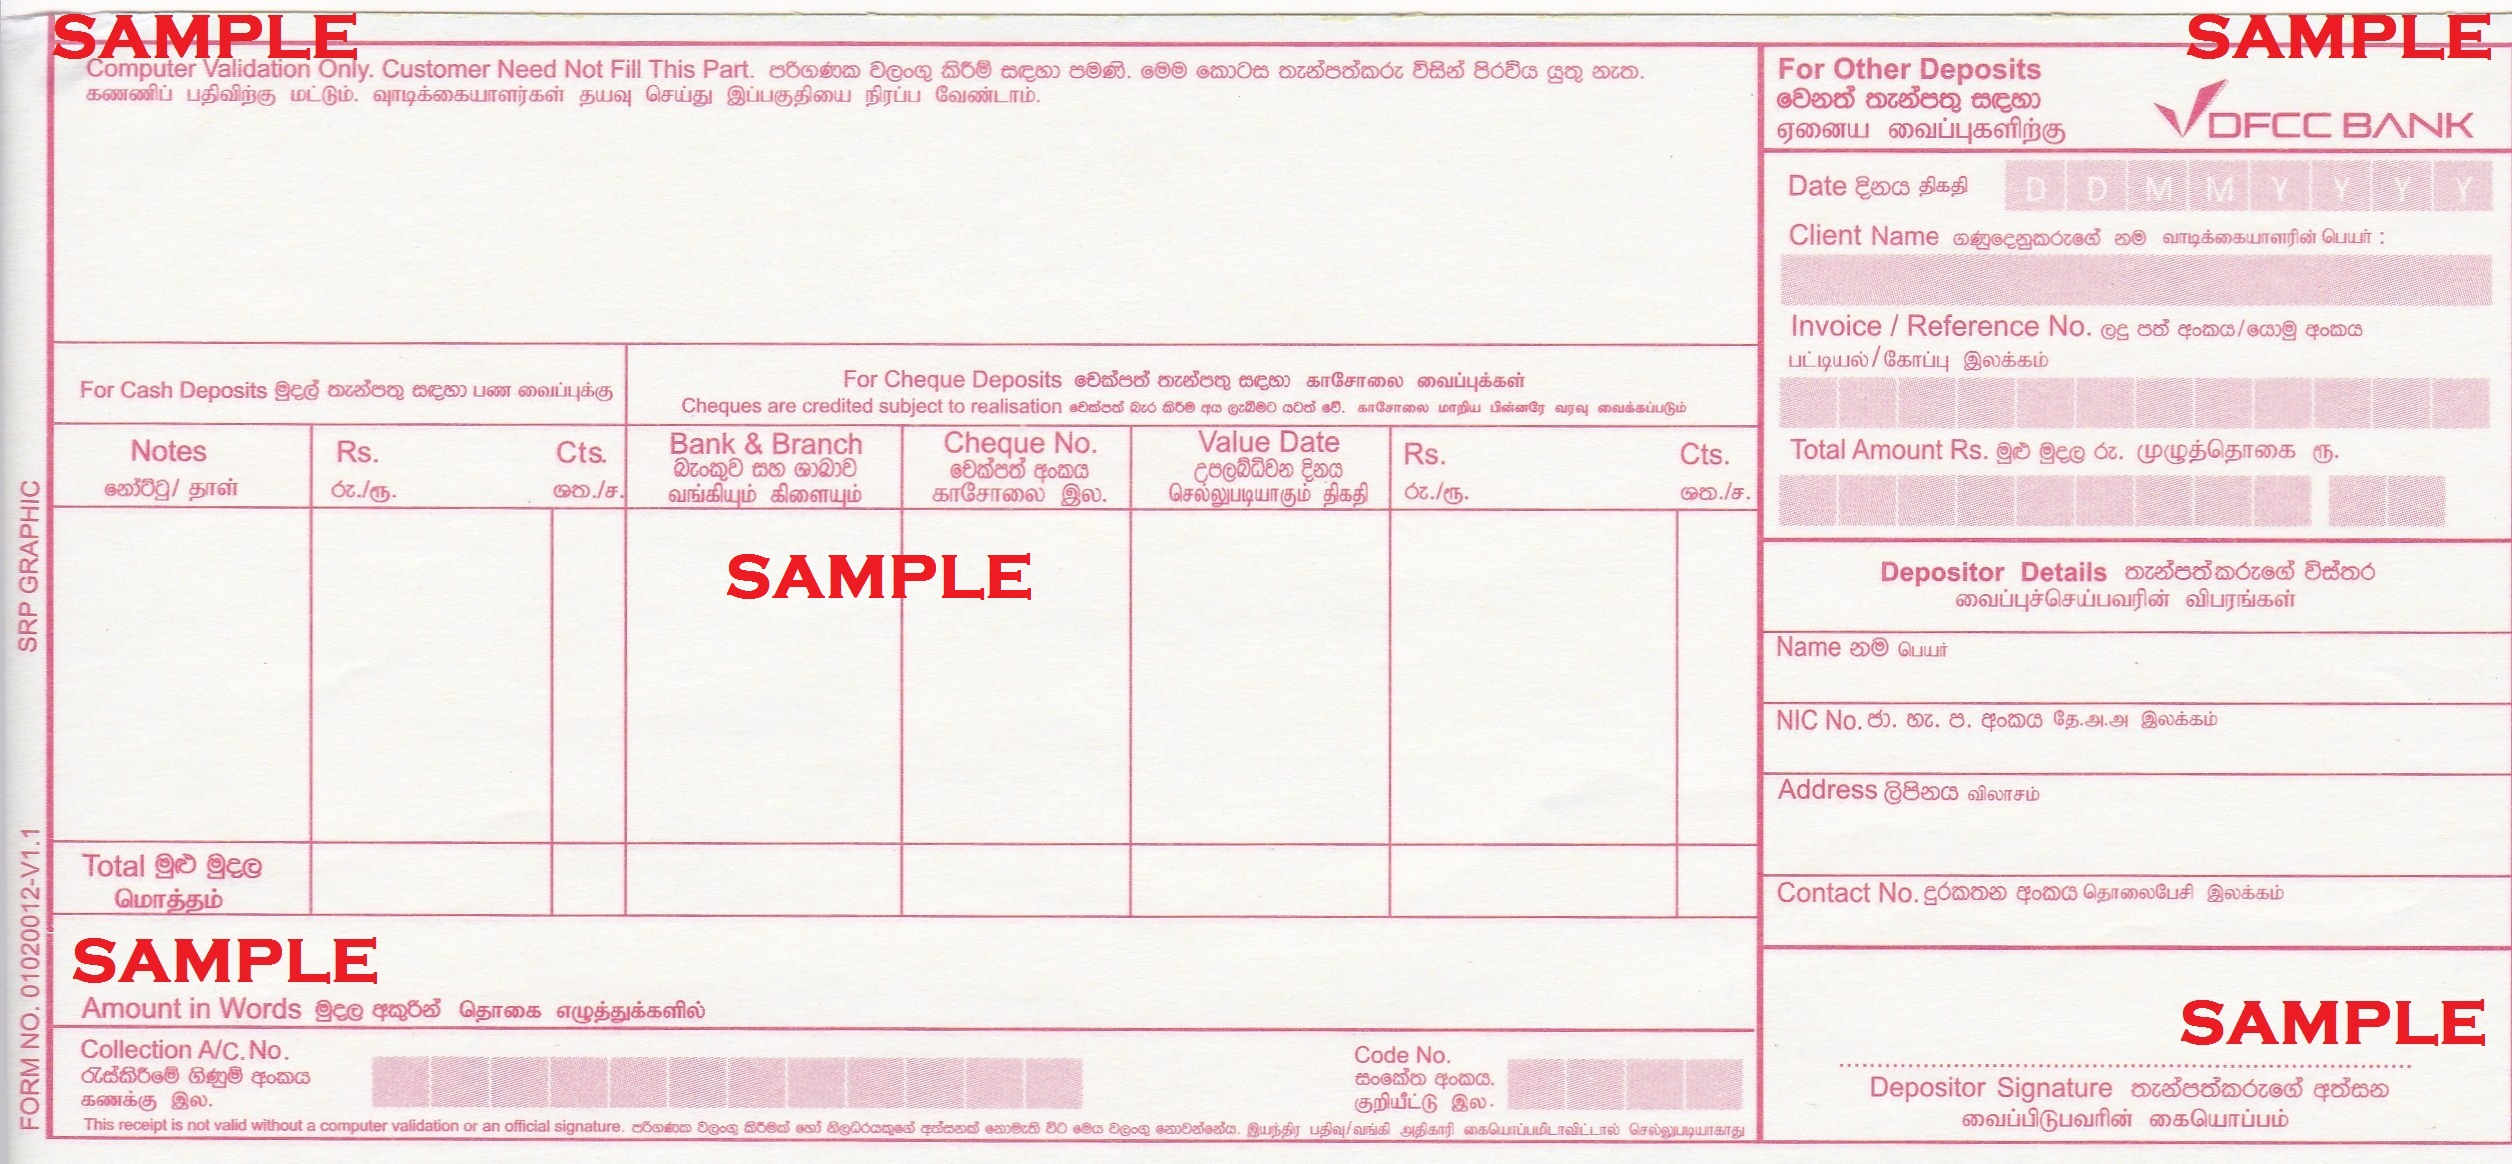 Deposit Slip_sample - New